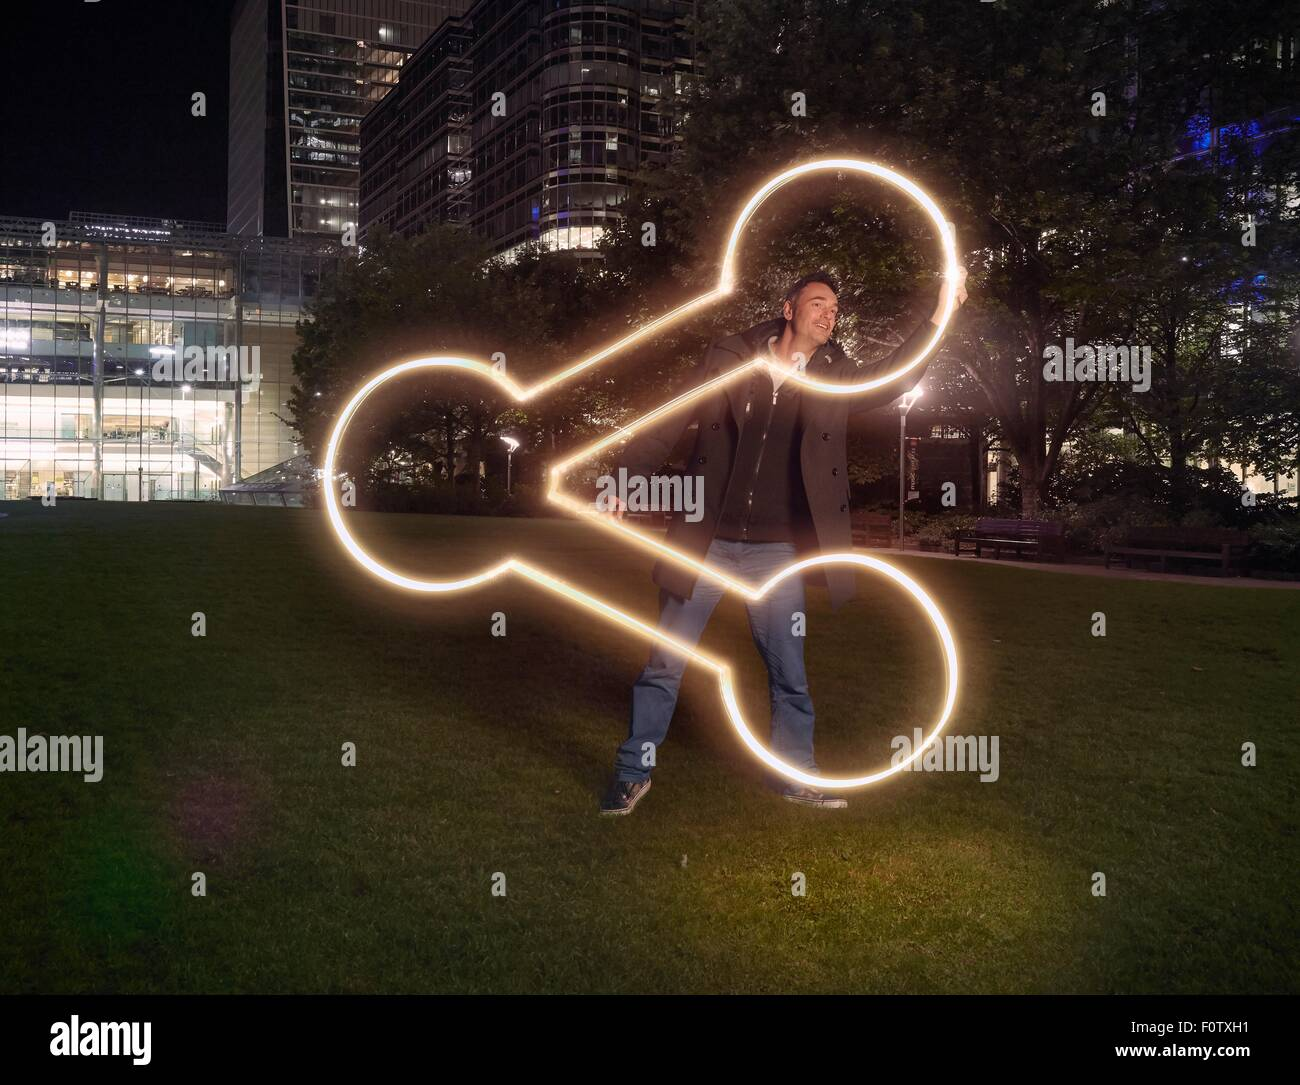 Artist painting share symbol outside office building at night - Stock Image